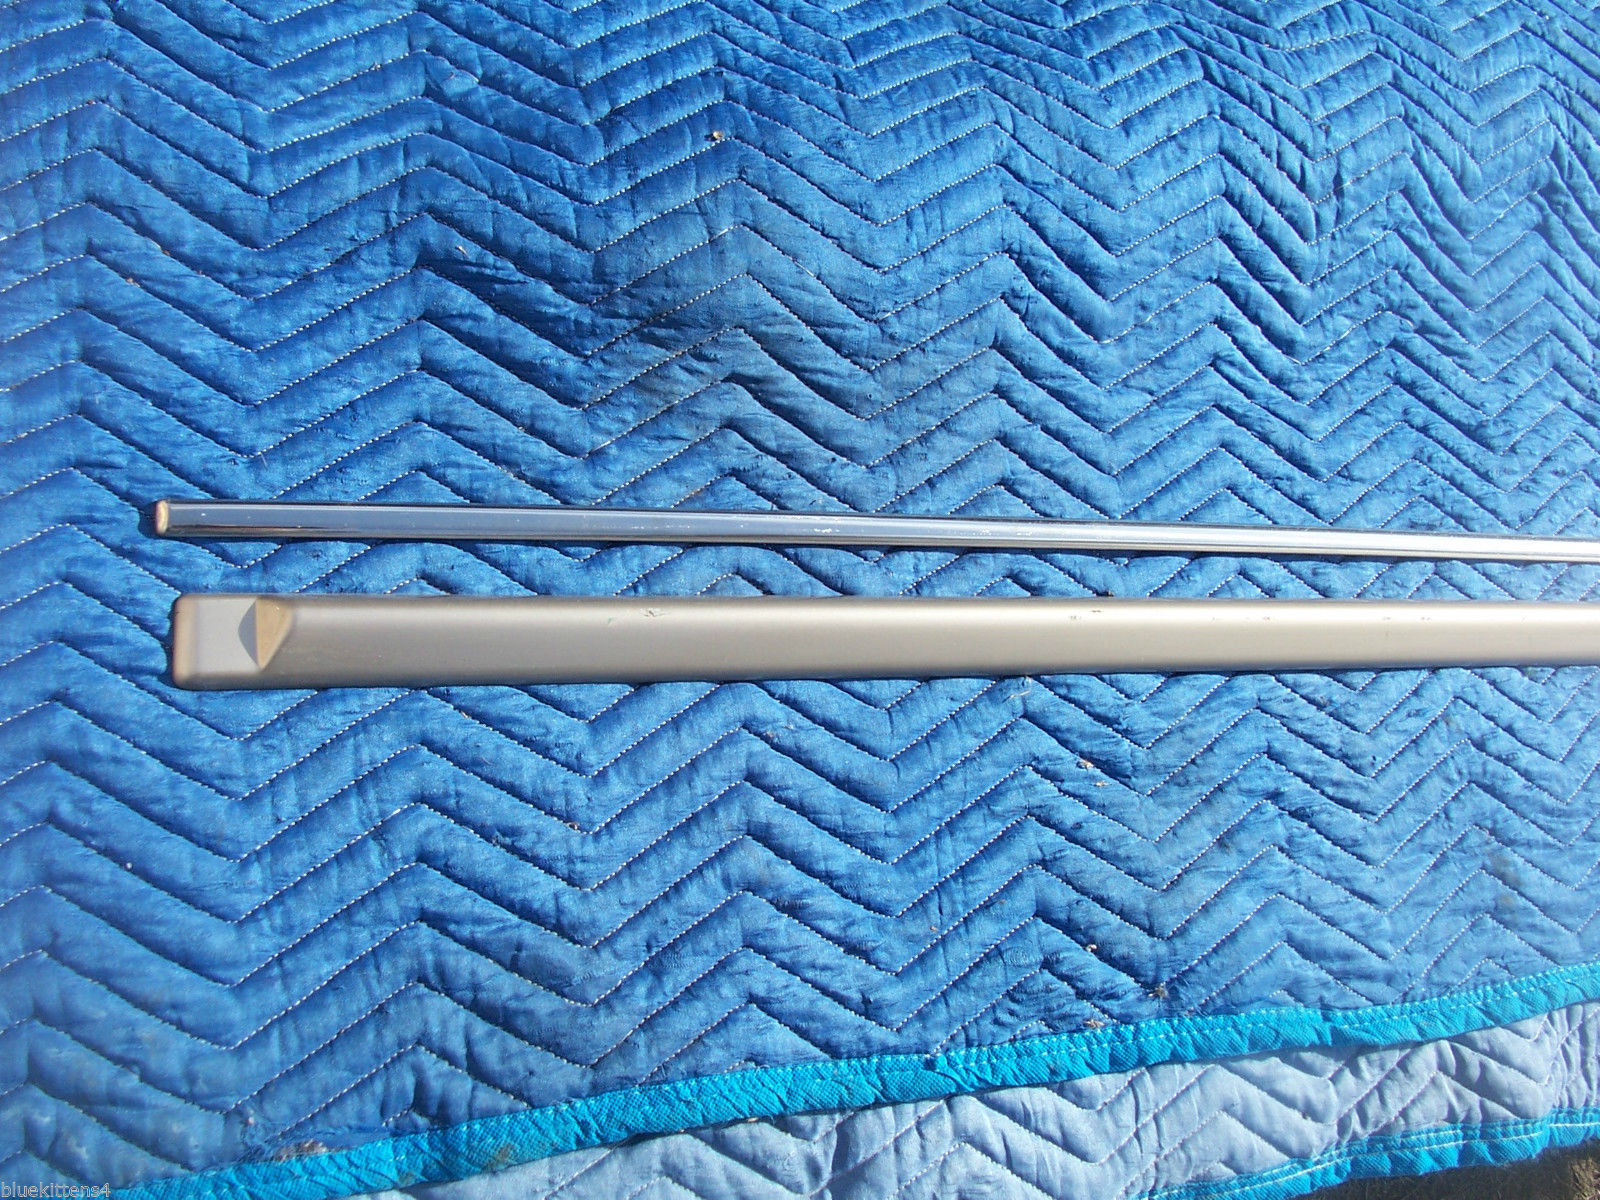 1997 JAGUAR XJ6 VANDEN RIGHT FRONT DOOR TRIM MOLDING ORIGINAL JAG  XJ PART 1995